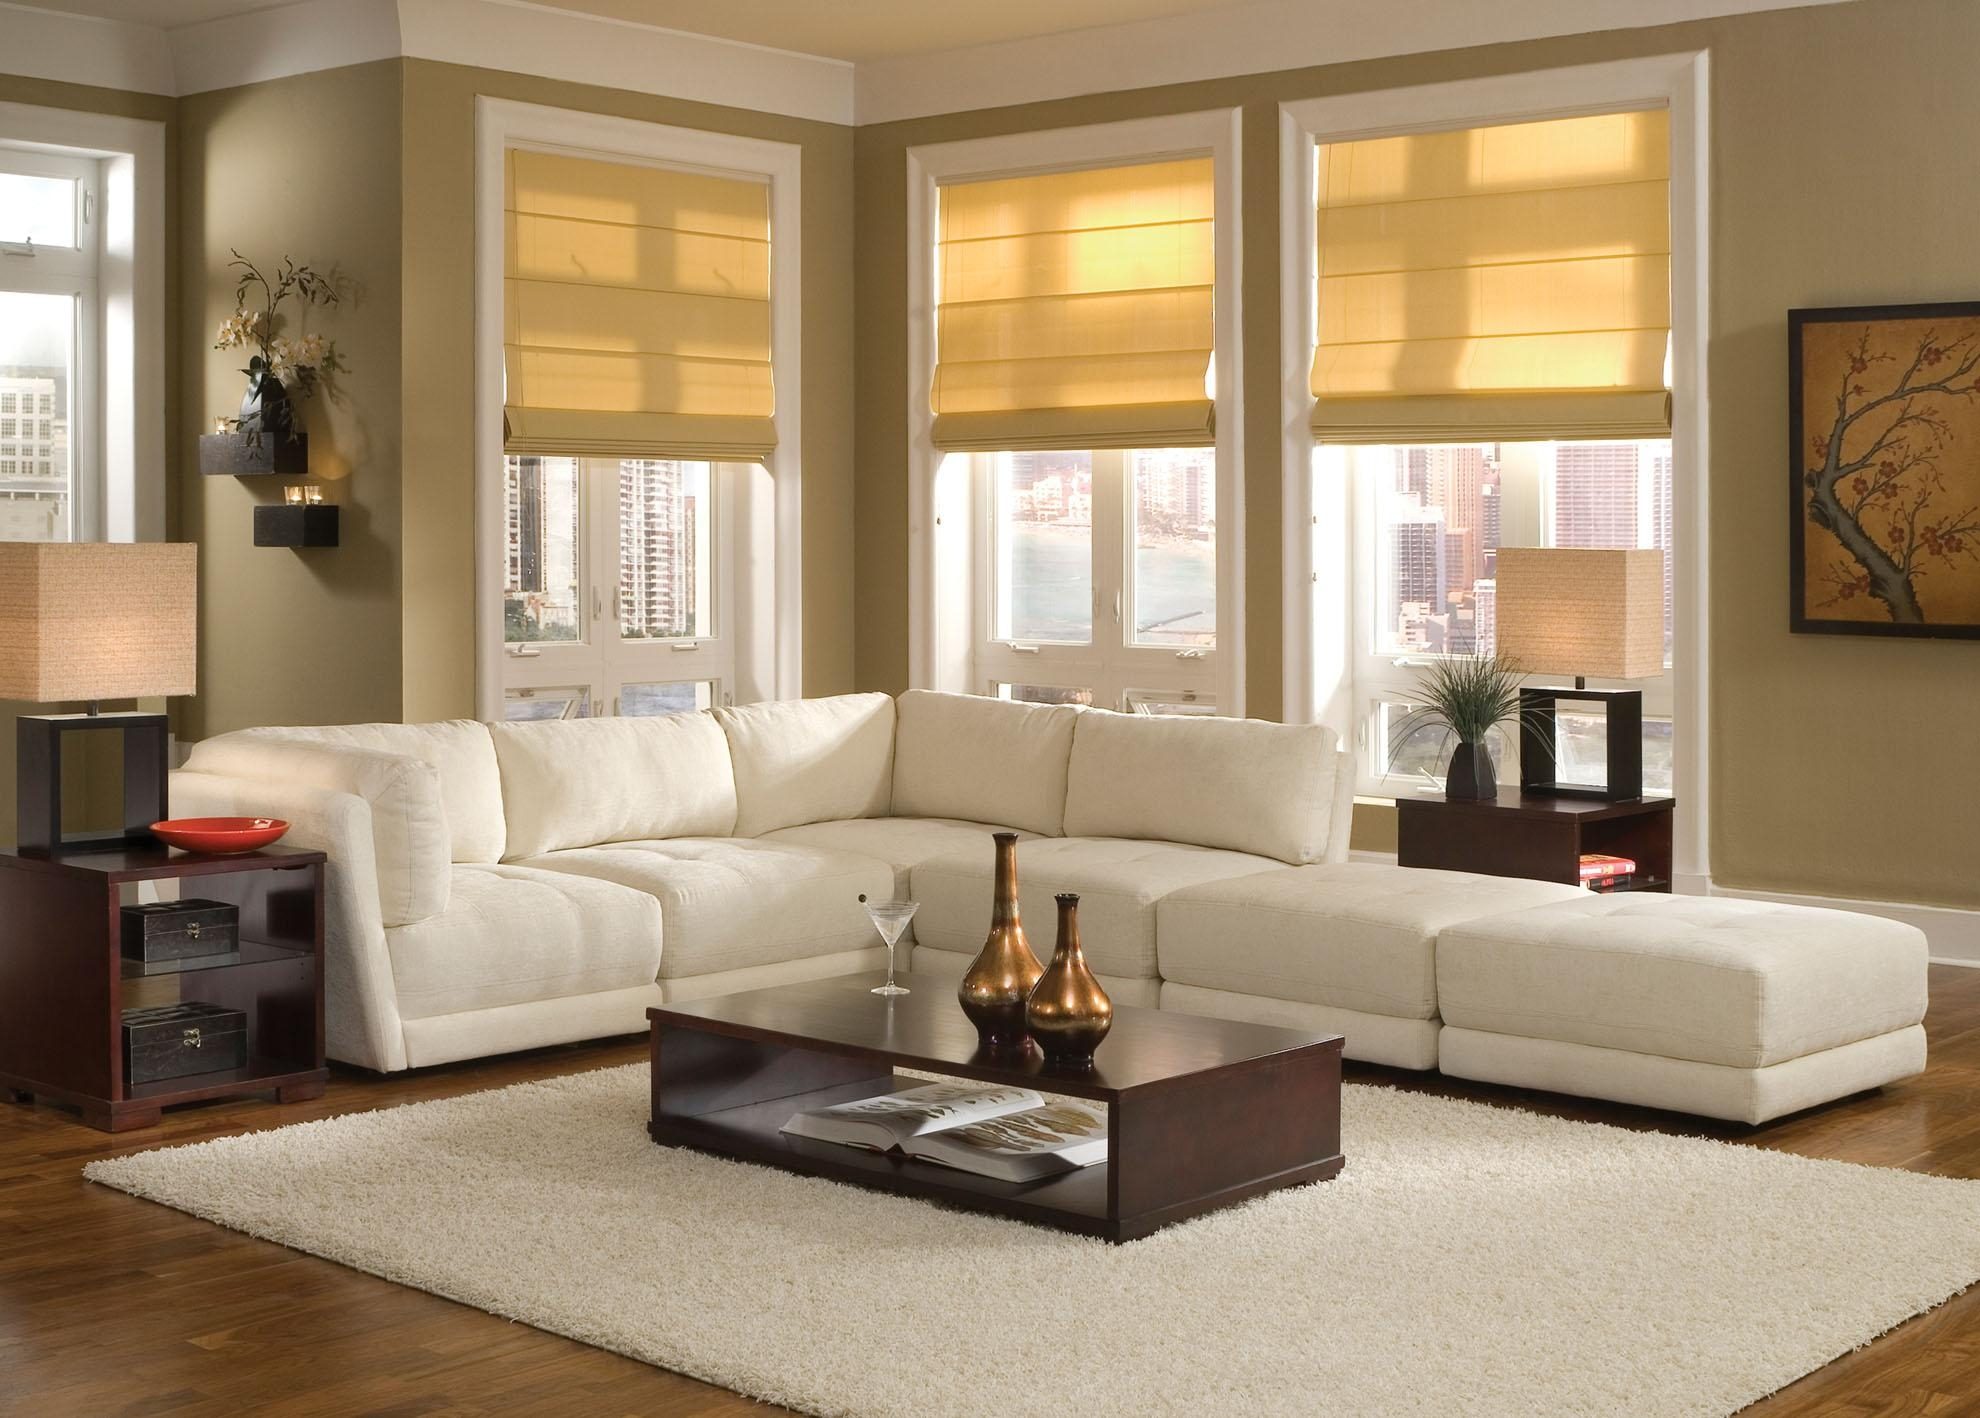 White Sofa Design Ideas & Pictures For Living Room For Living Room Sofas And Chairs (View 18 of 20)